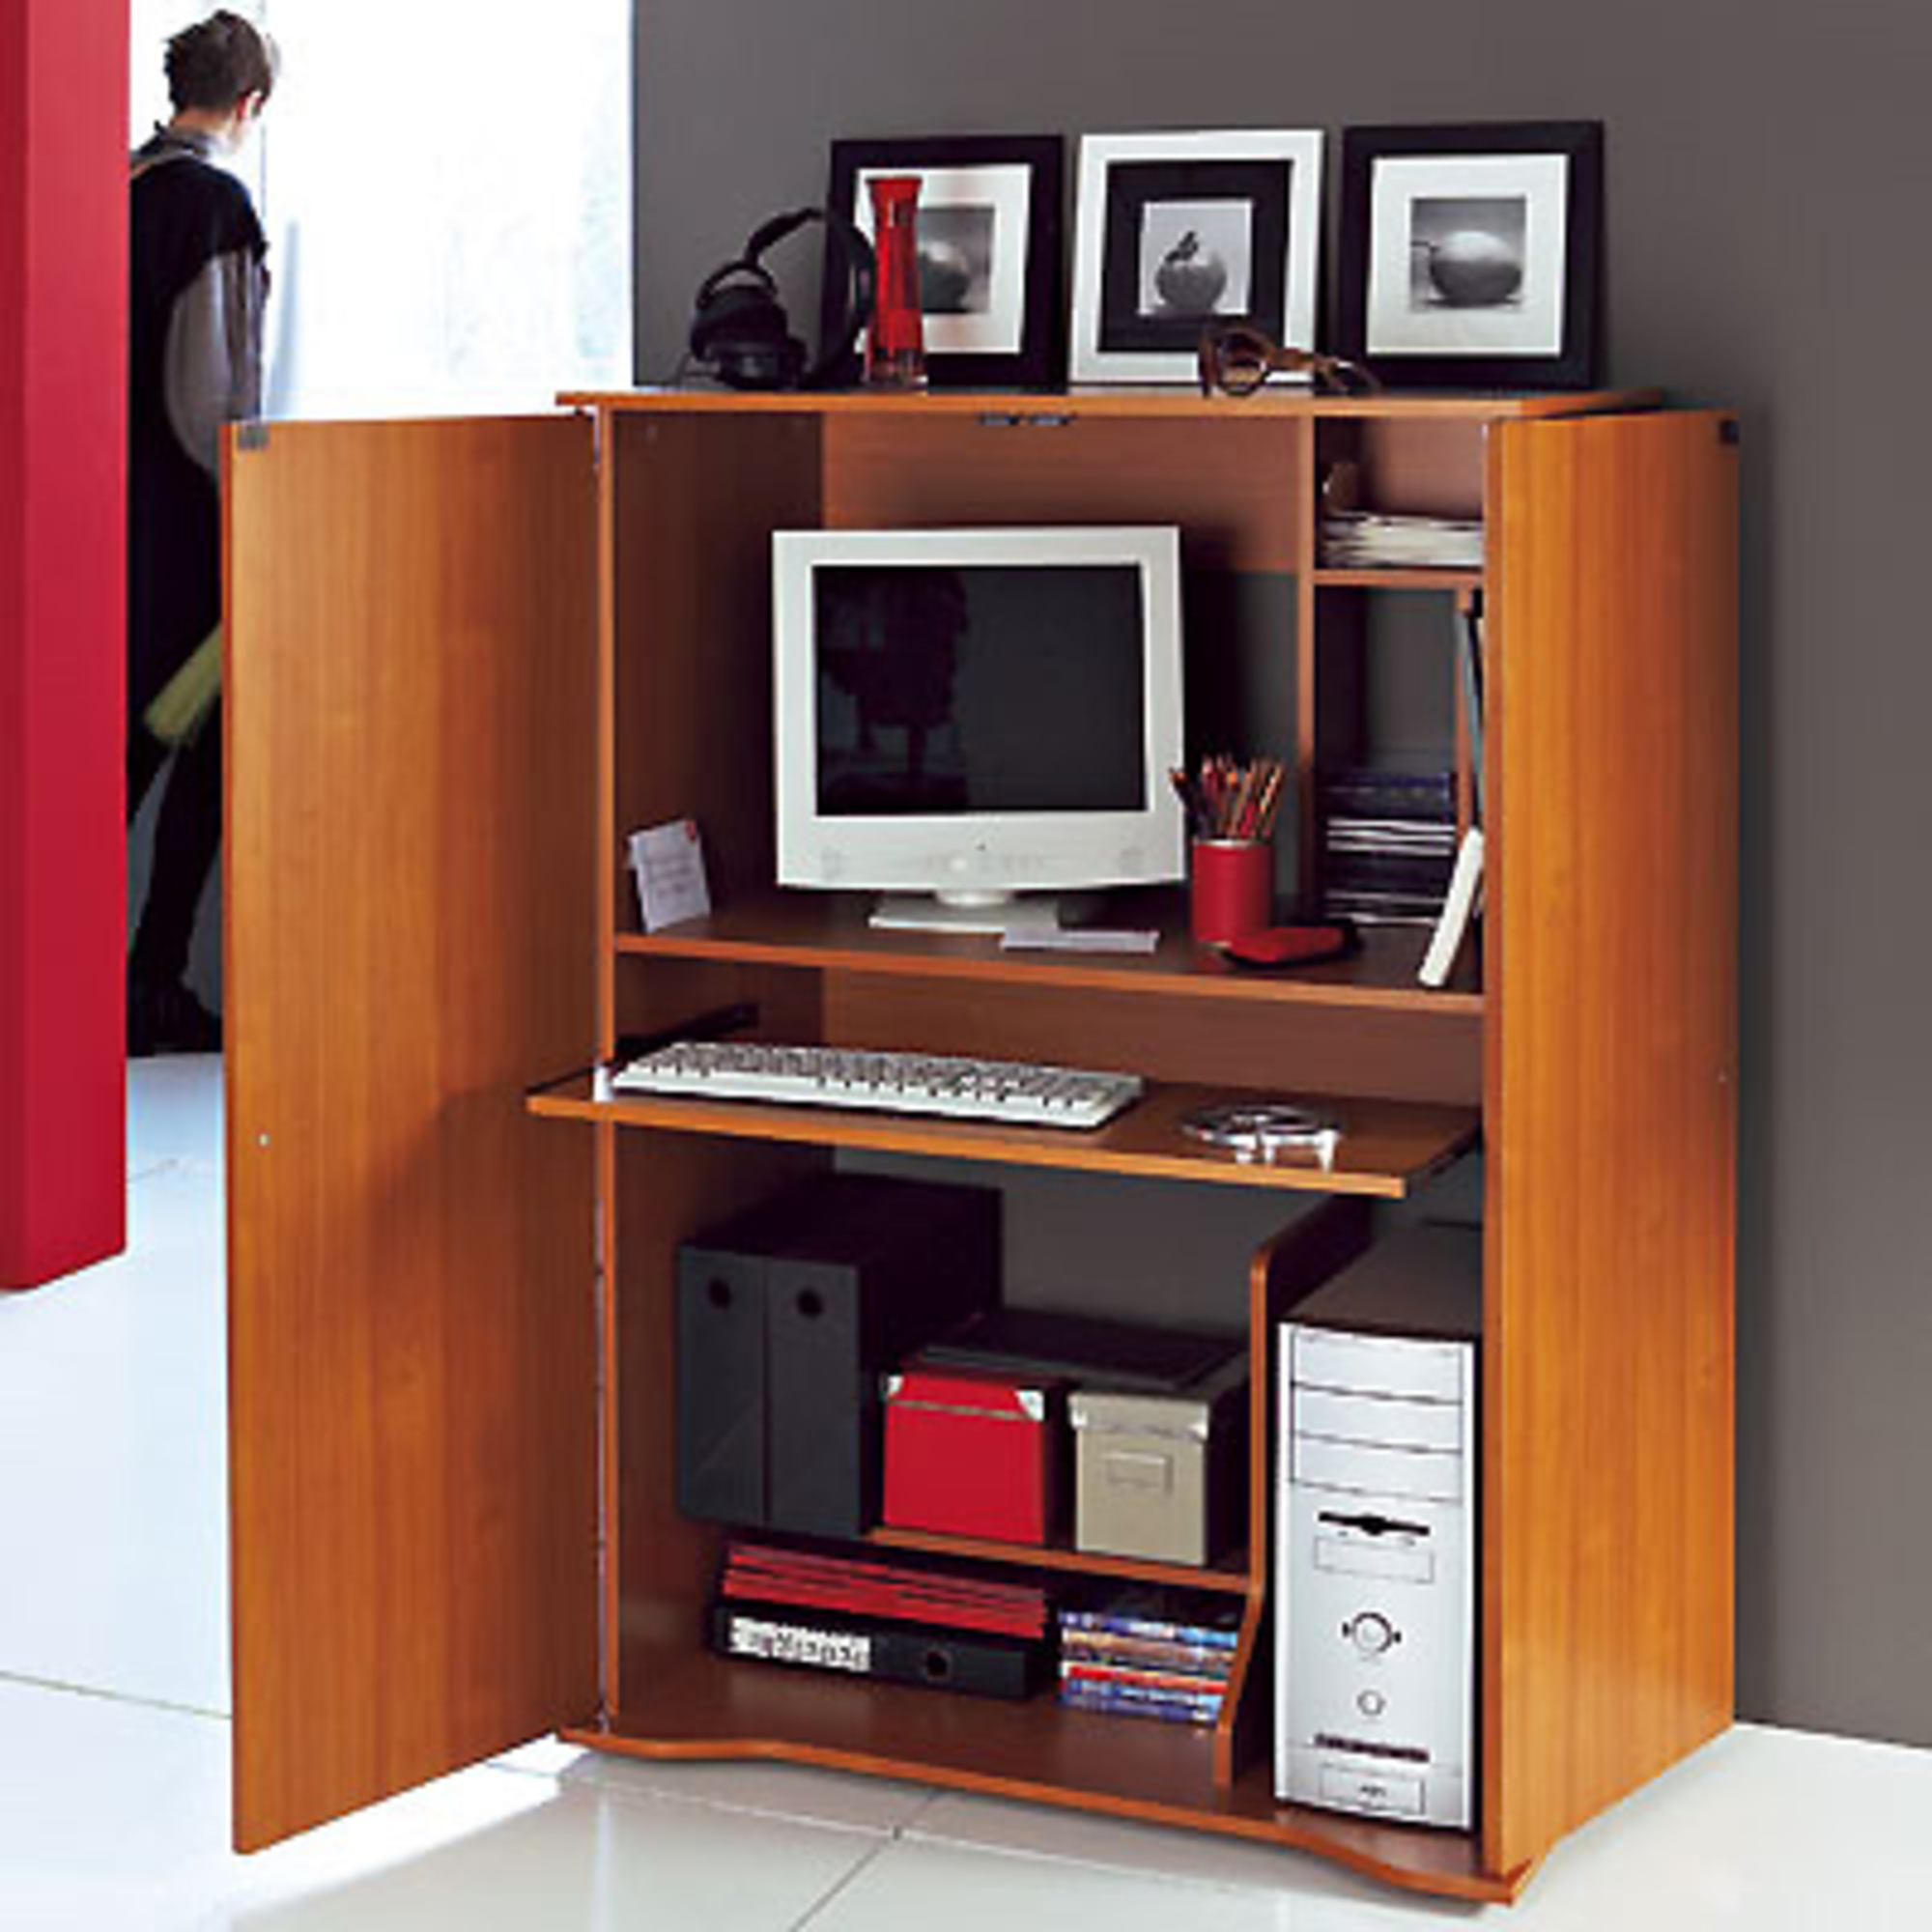 armoire bureau gigaoctet merisier anniversaire 40 ans. Black Bedroom Furniture Sets. Home Design Ideas